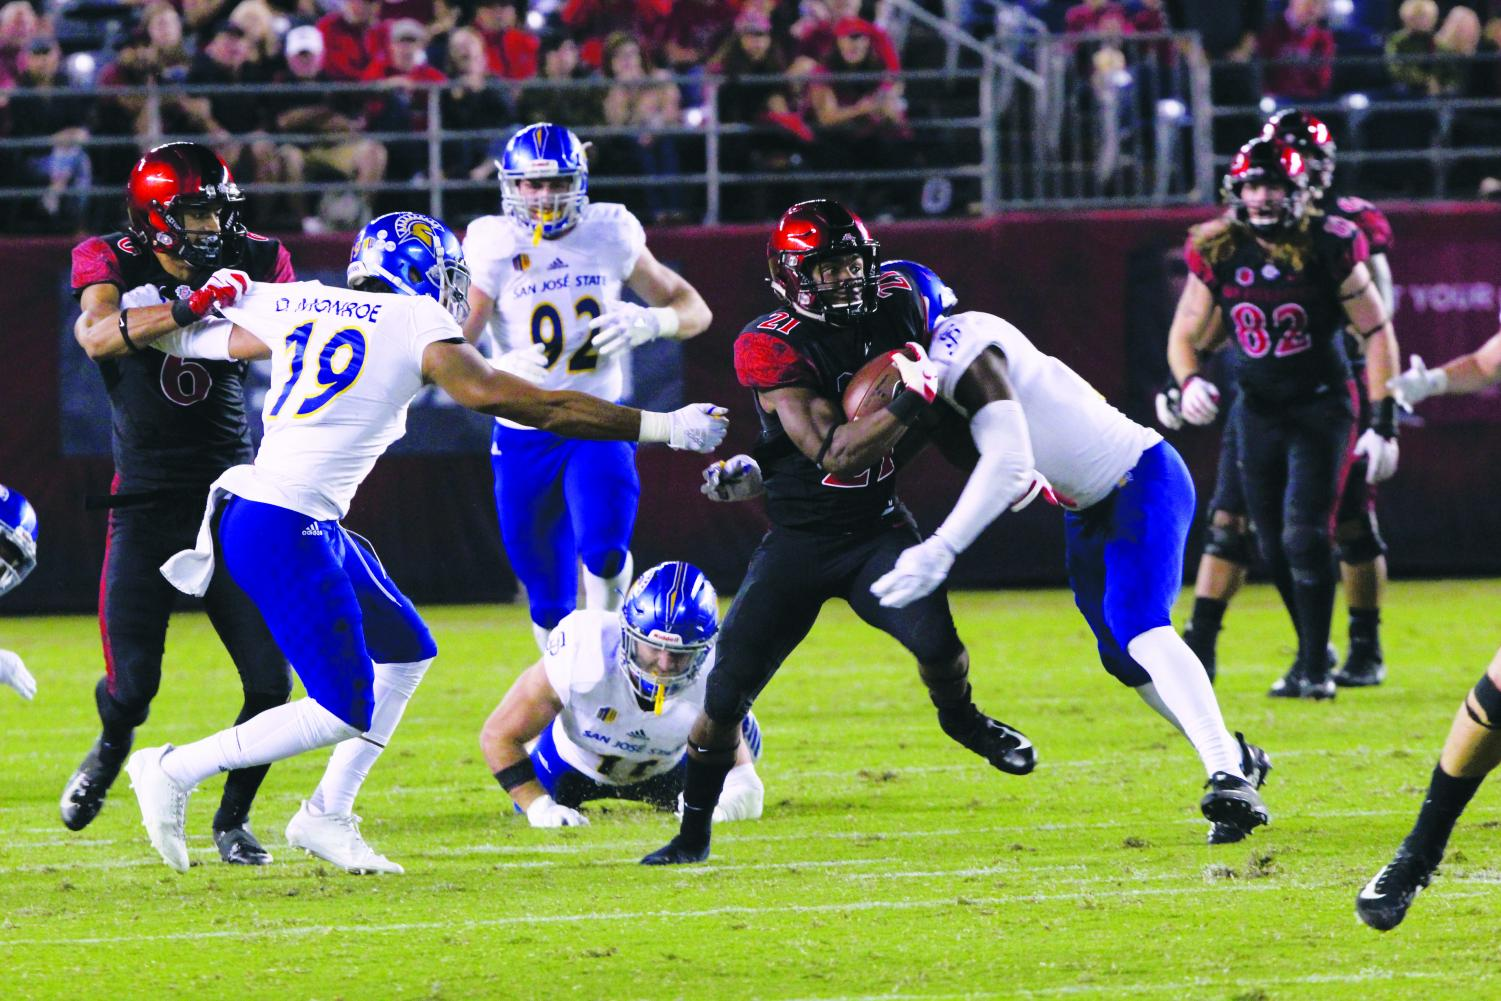 Redshirt freshman Chance Bell runs the ball during the Aztecs' 16-13 win over San Jose State at SDCCU Stadium on Oct. 20.